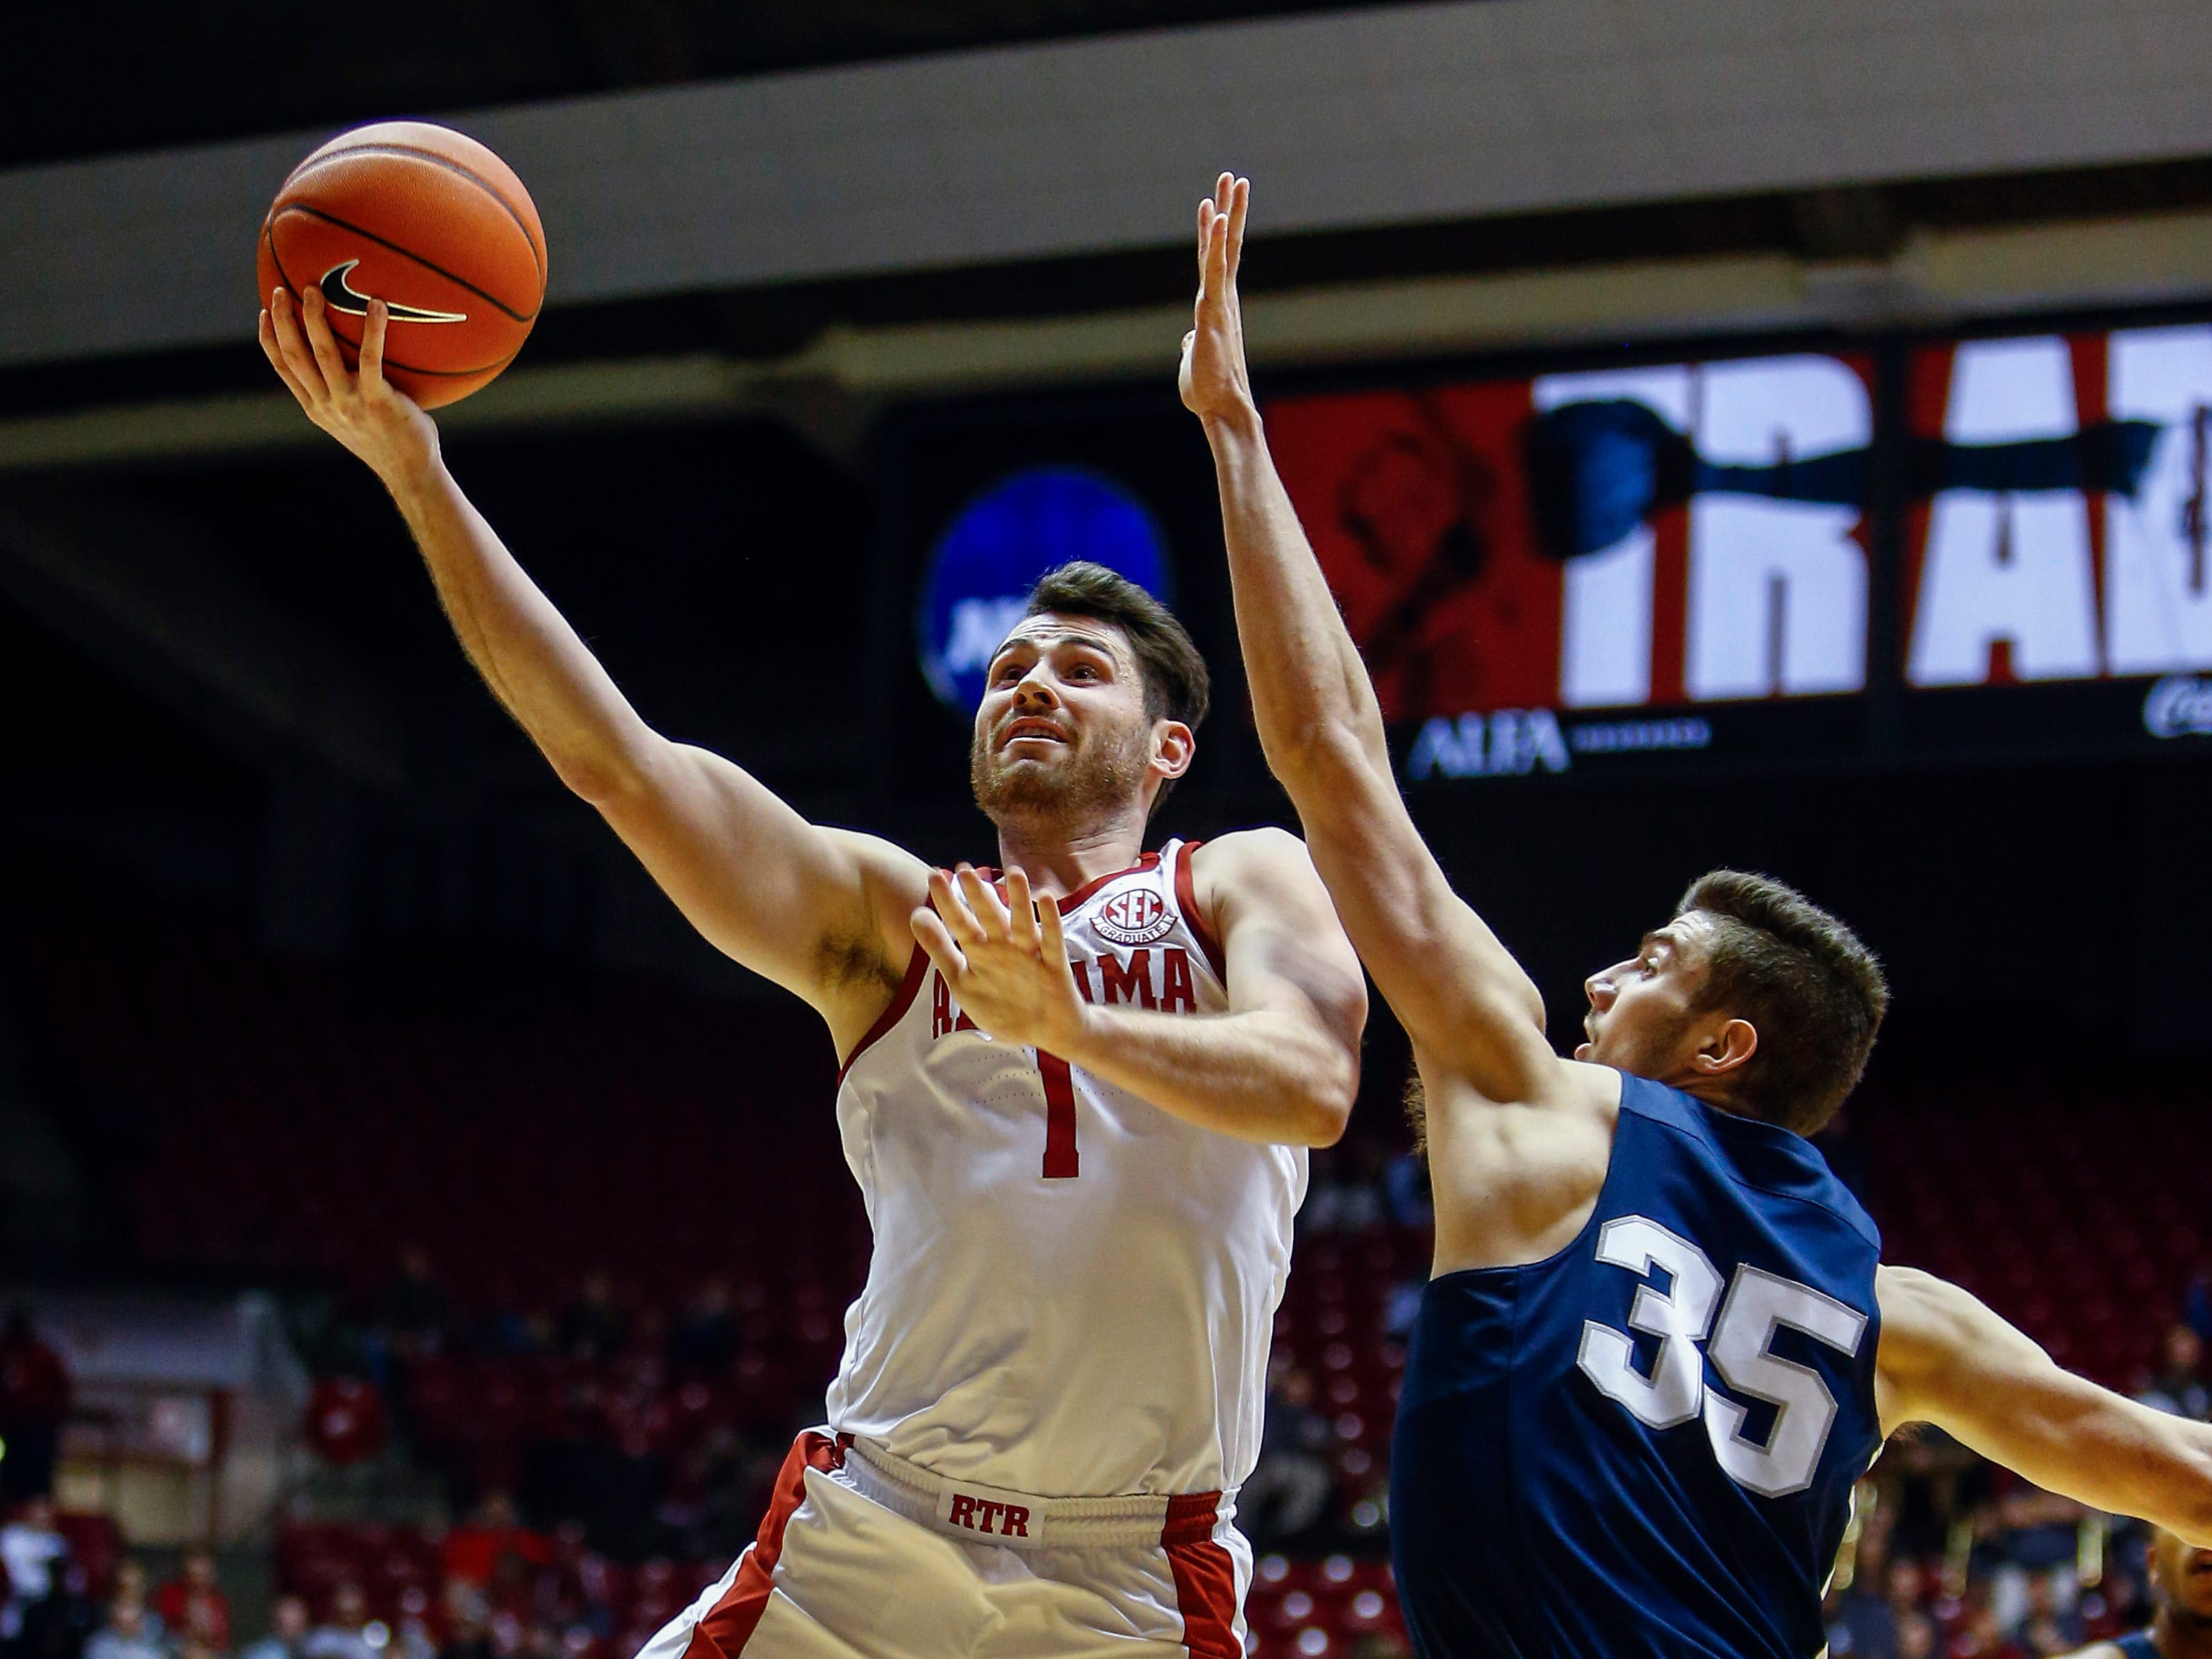 Dec 21, 2018; Tuscaloosa, AL, USA; Alabama Crimson Tide guard Riley Norris (1) shoots the ball past Penn State Nittany Lions forward Trent Buttrick (35) during the second half of an NCAA college basketball game at Coleman Coliseum. Mandatory Credit: Butch Dill-USA TODAY Sports